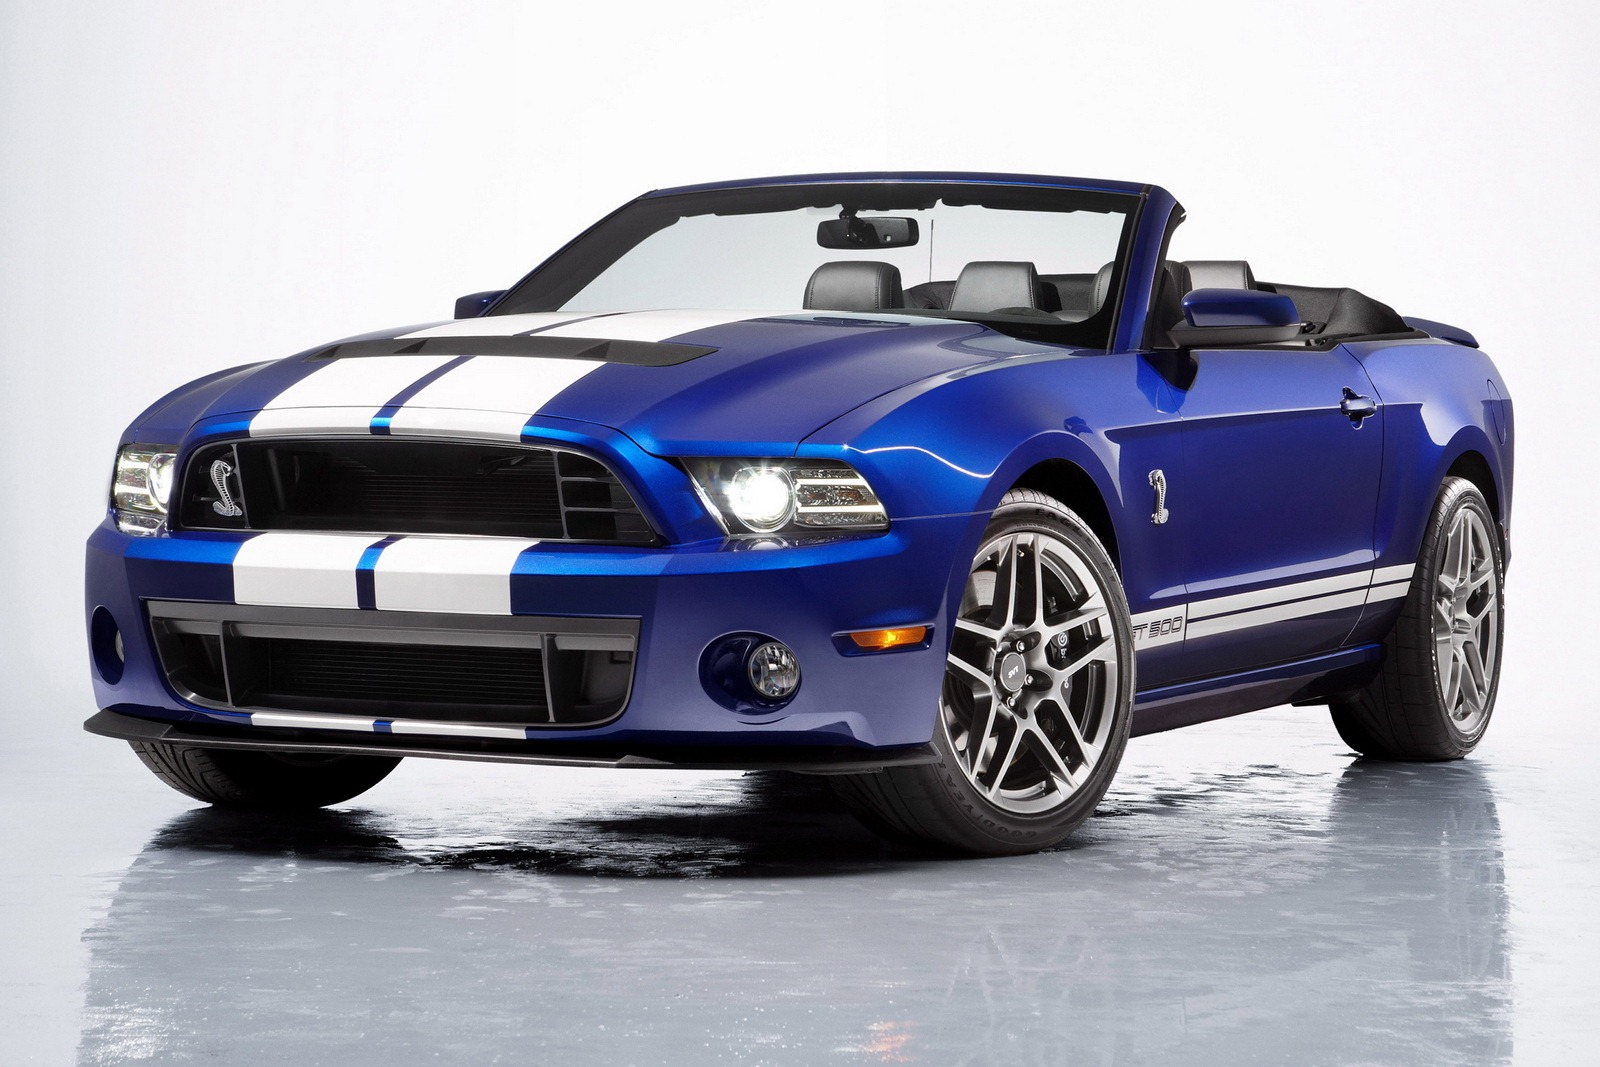 2013 Ford Shelby GT500 Convertible 2013 Ford Shelby GT500 Convertible  Energy Efficient and Fuel Economic